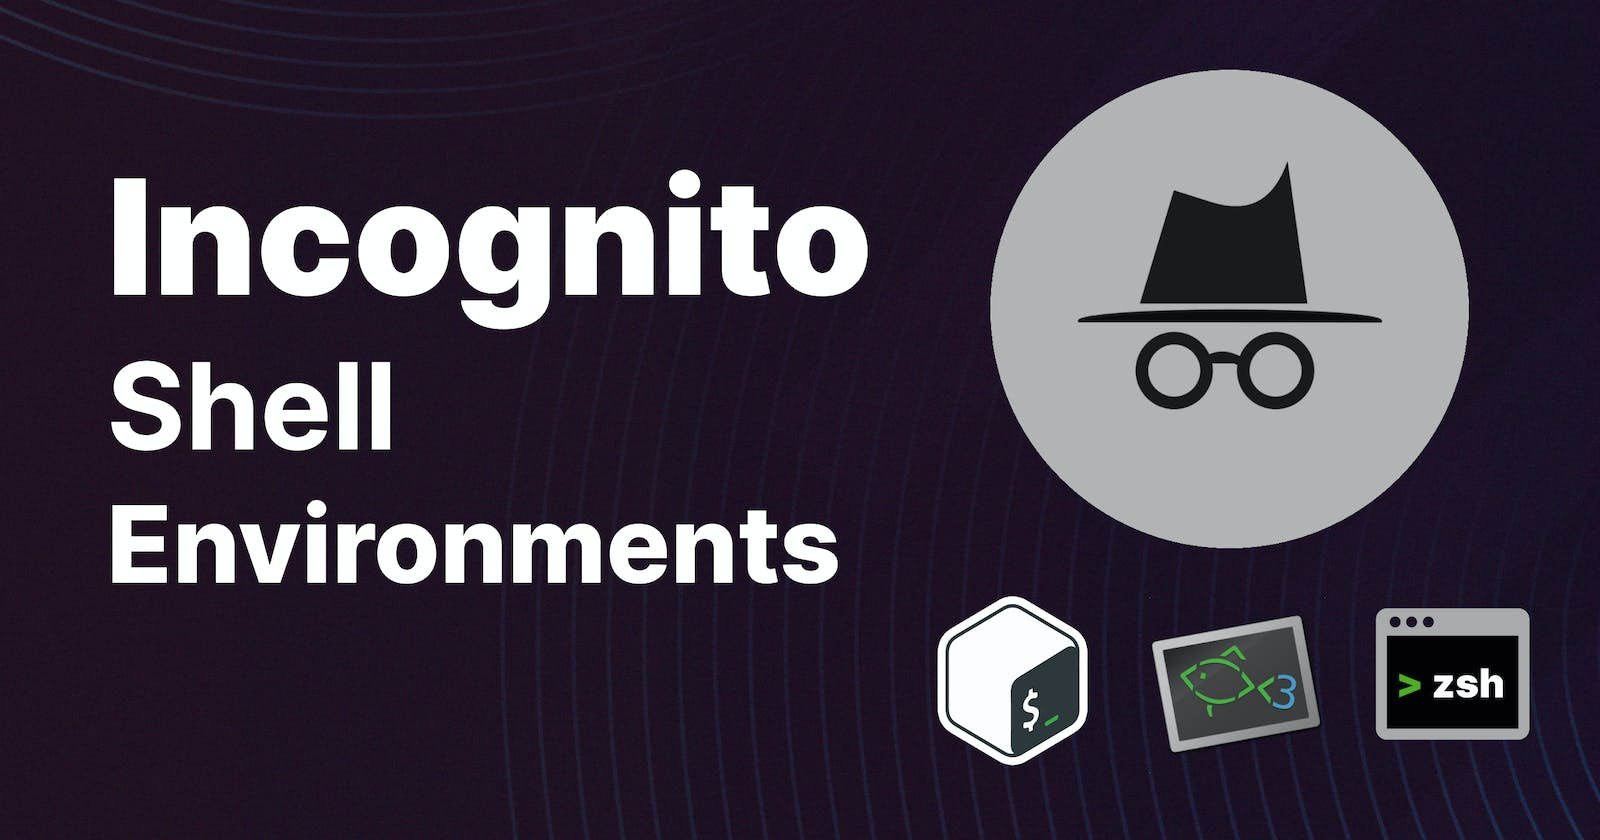 Incognito Mode for Shell Environments